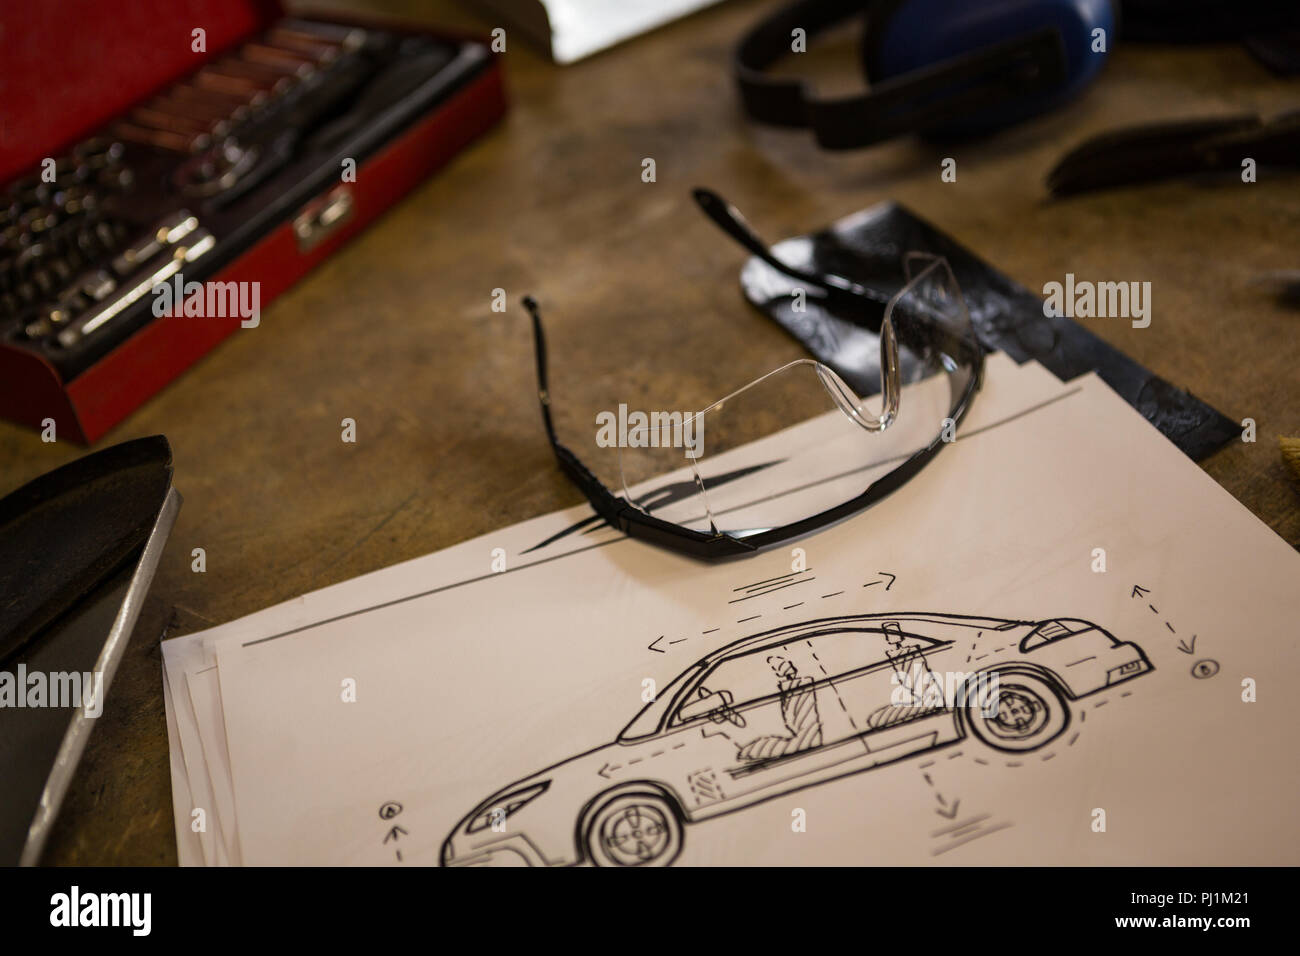 Protective eyewear with chart on a table - Stock Image